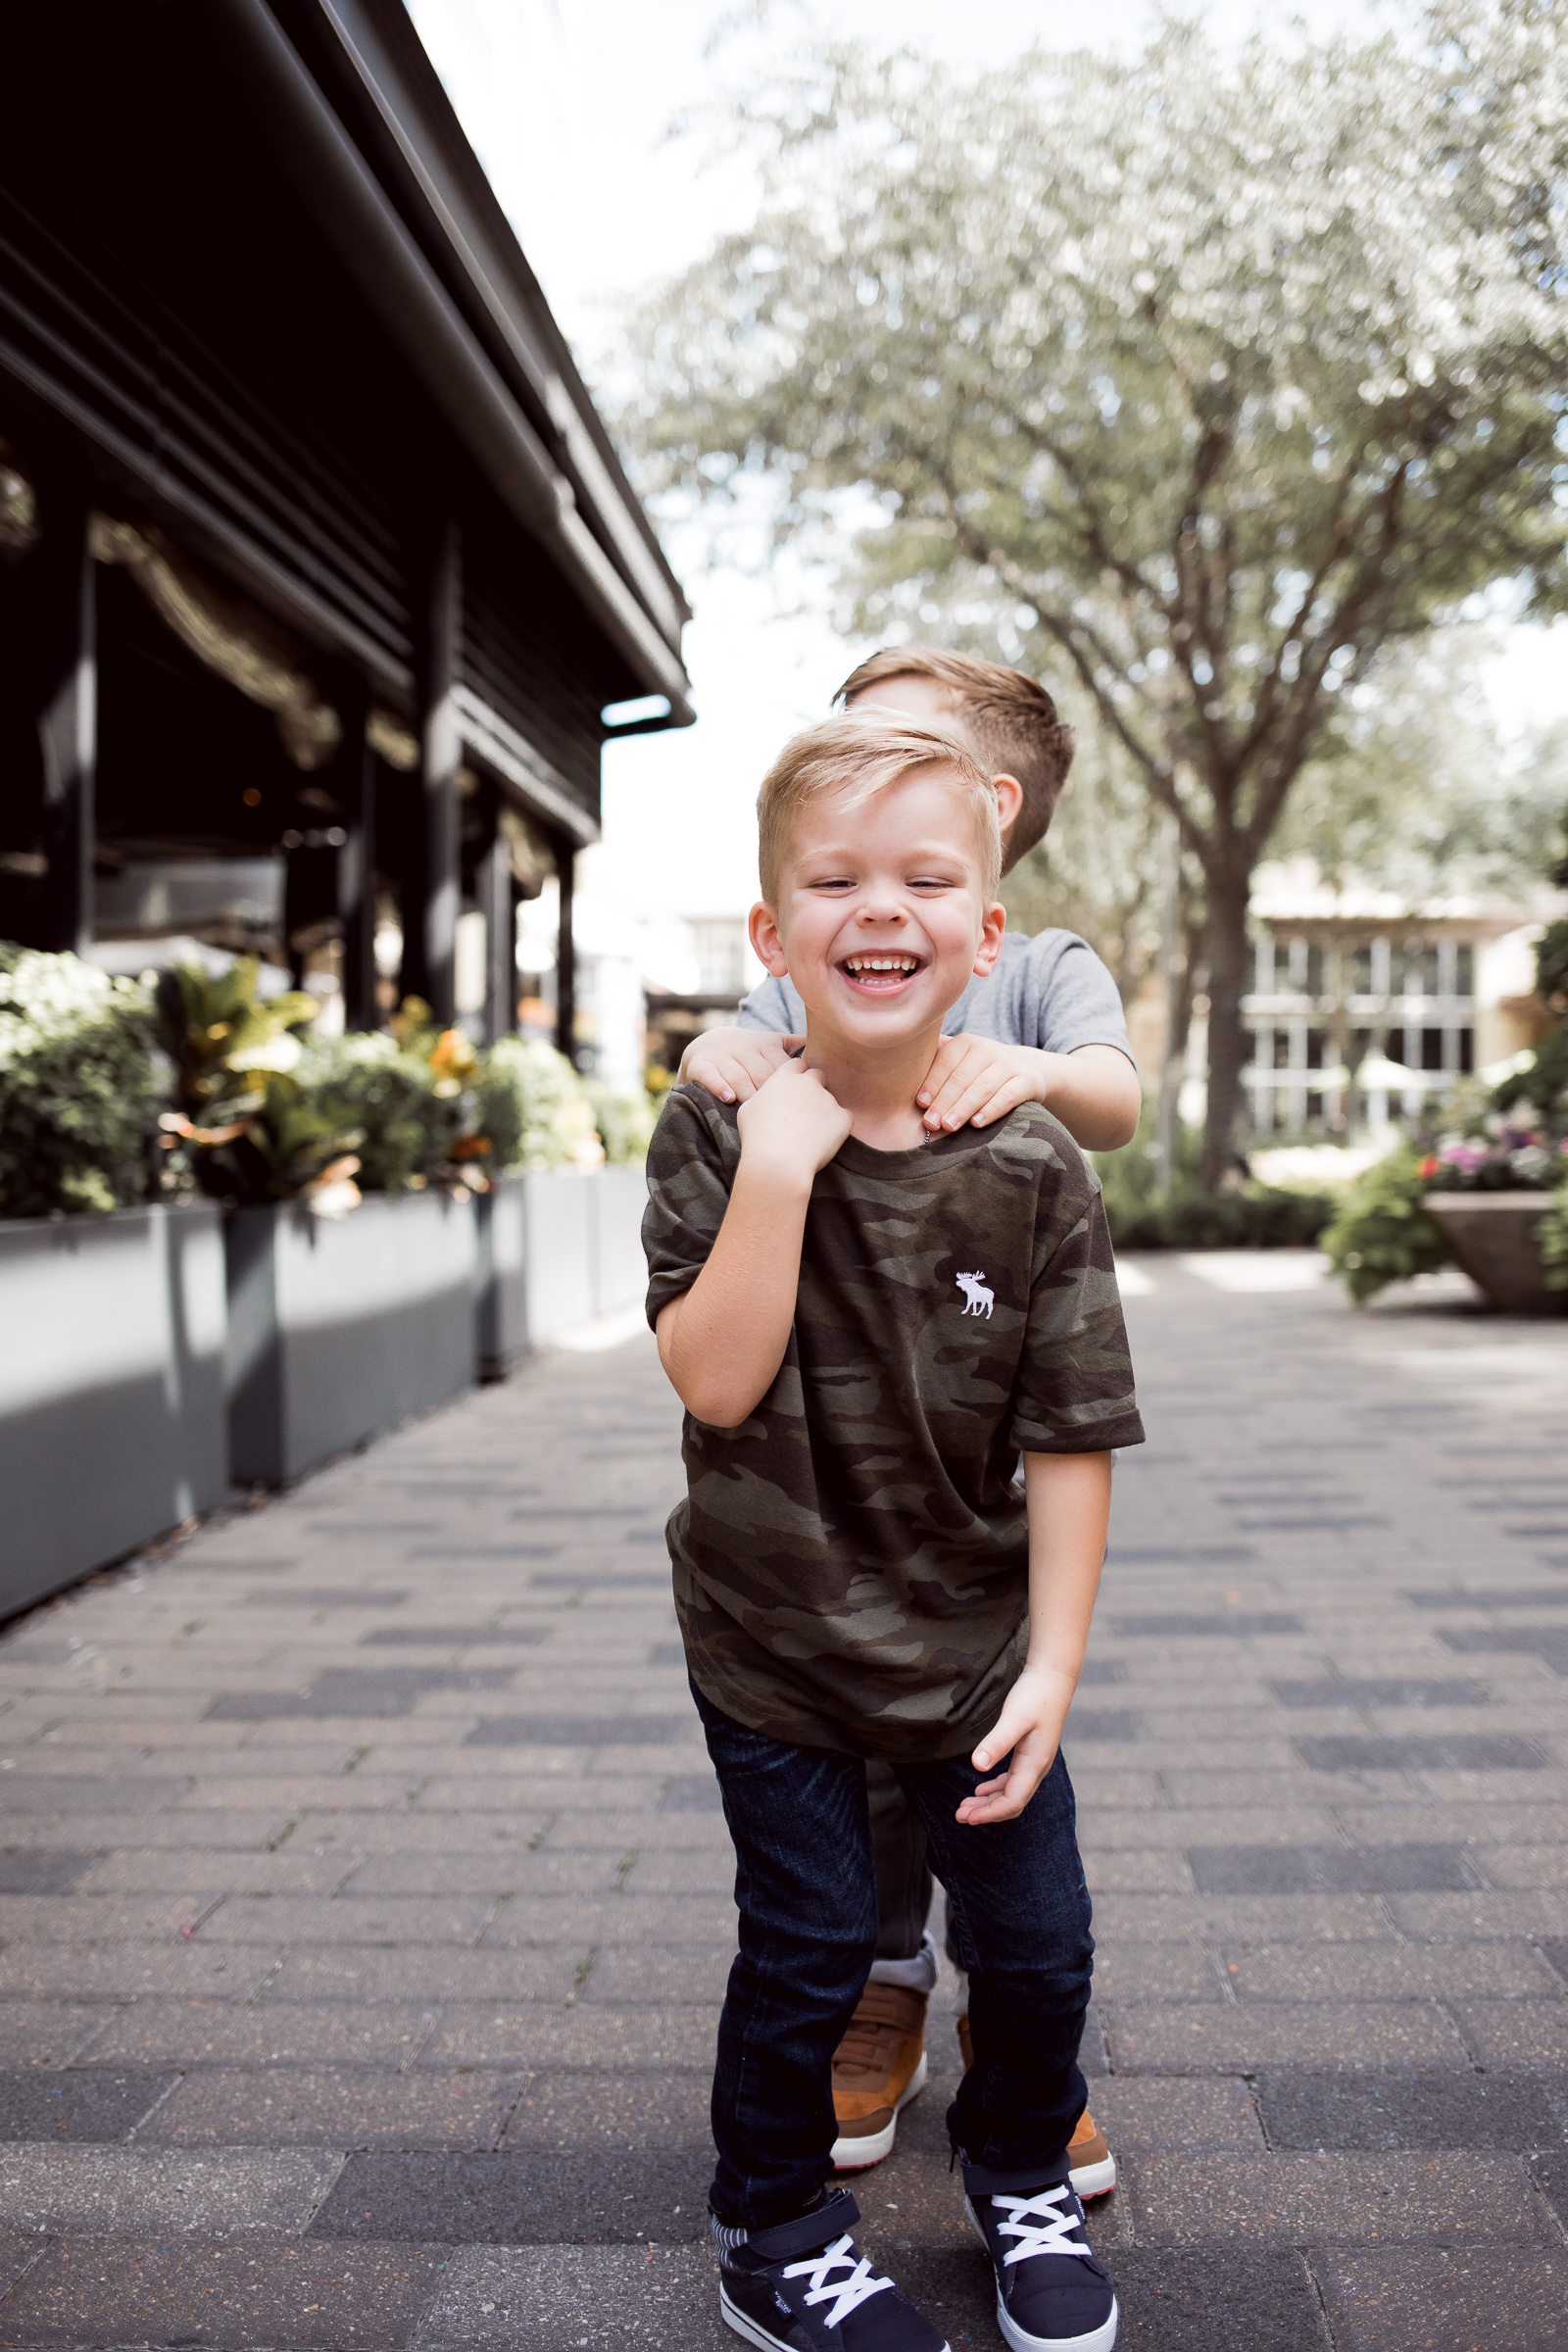 Houston fashion blogger Elly Brown shares how to dress your kids in style with Abercrombie kids for Back to School!